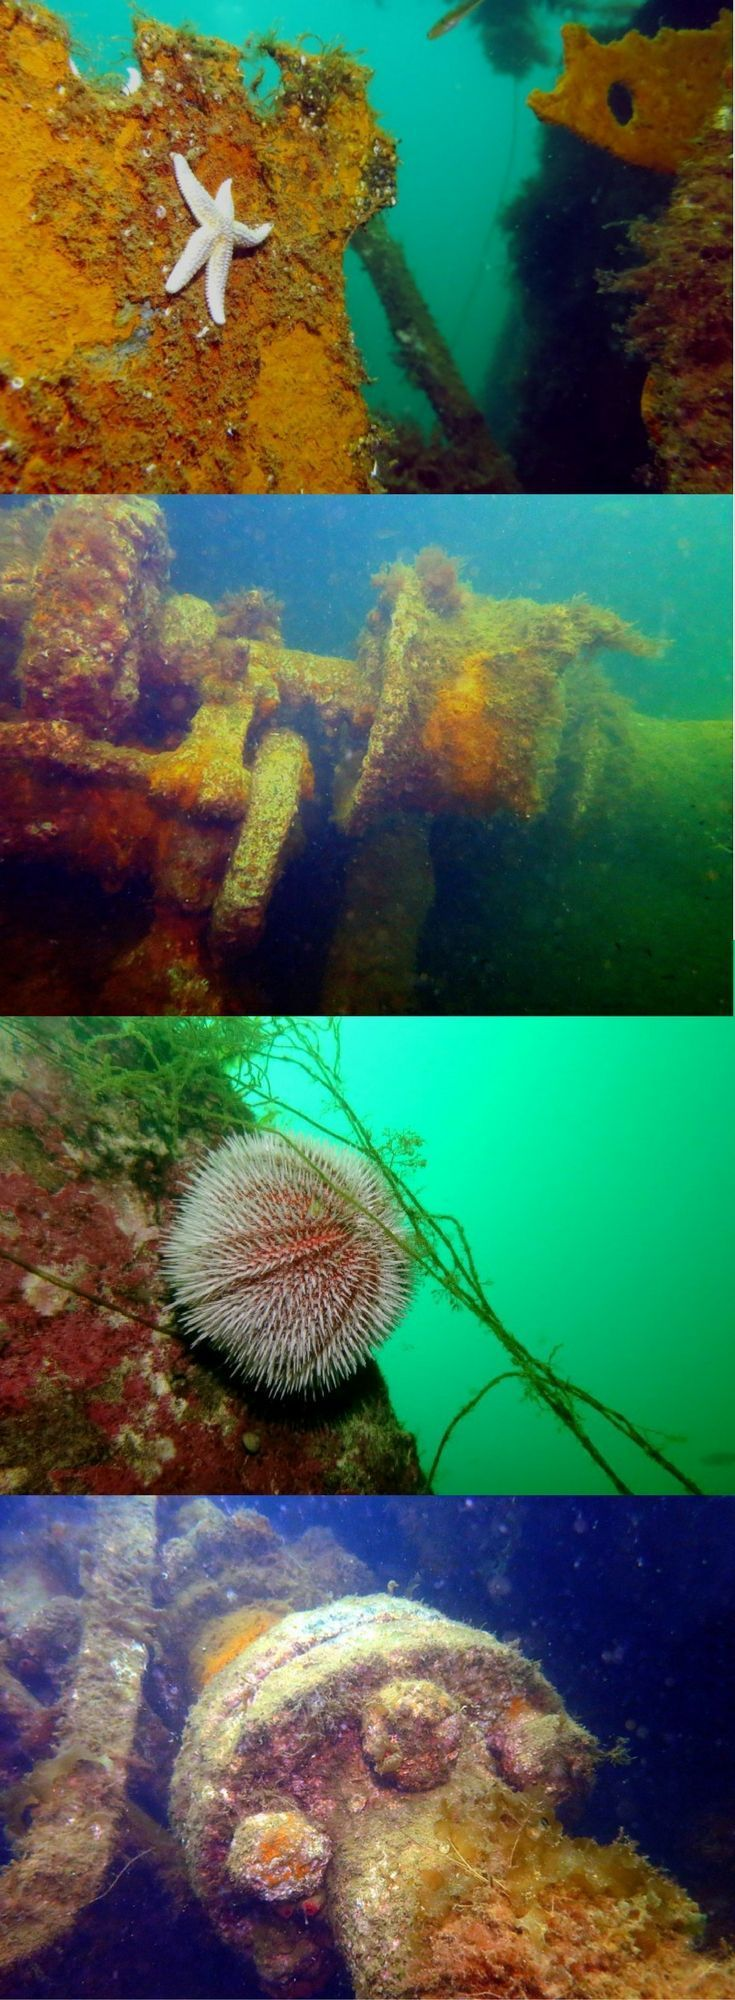 Scuba Diving in Churchill Barriers - A scuba diving road to Scapa Flow, Orkney Islands, Scotland, UK – World Adventure Divers – Read more on https://worldadventuredivers.com/2015/10/17/a-scuba-road-trip-to-scapa-flow-orkney-scotland/ #scubadivercostumes